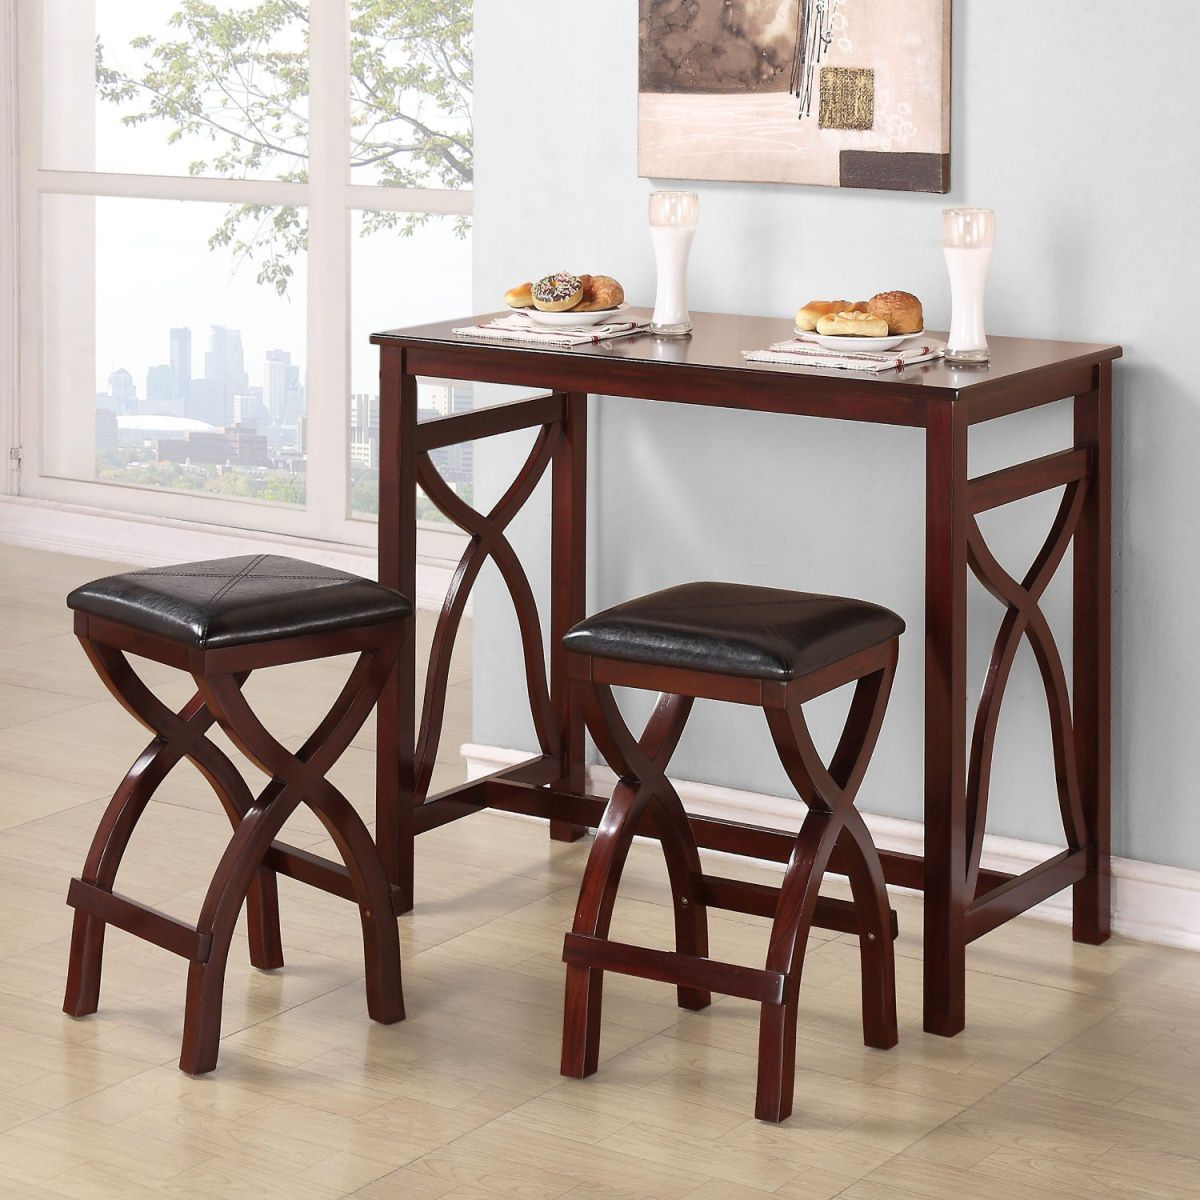 Small Dining Room Tables For Small Spaces: Small Round Dining Tables Ideas For Small Spaces 06